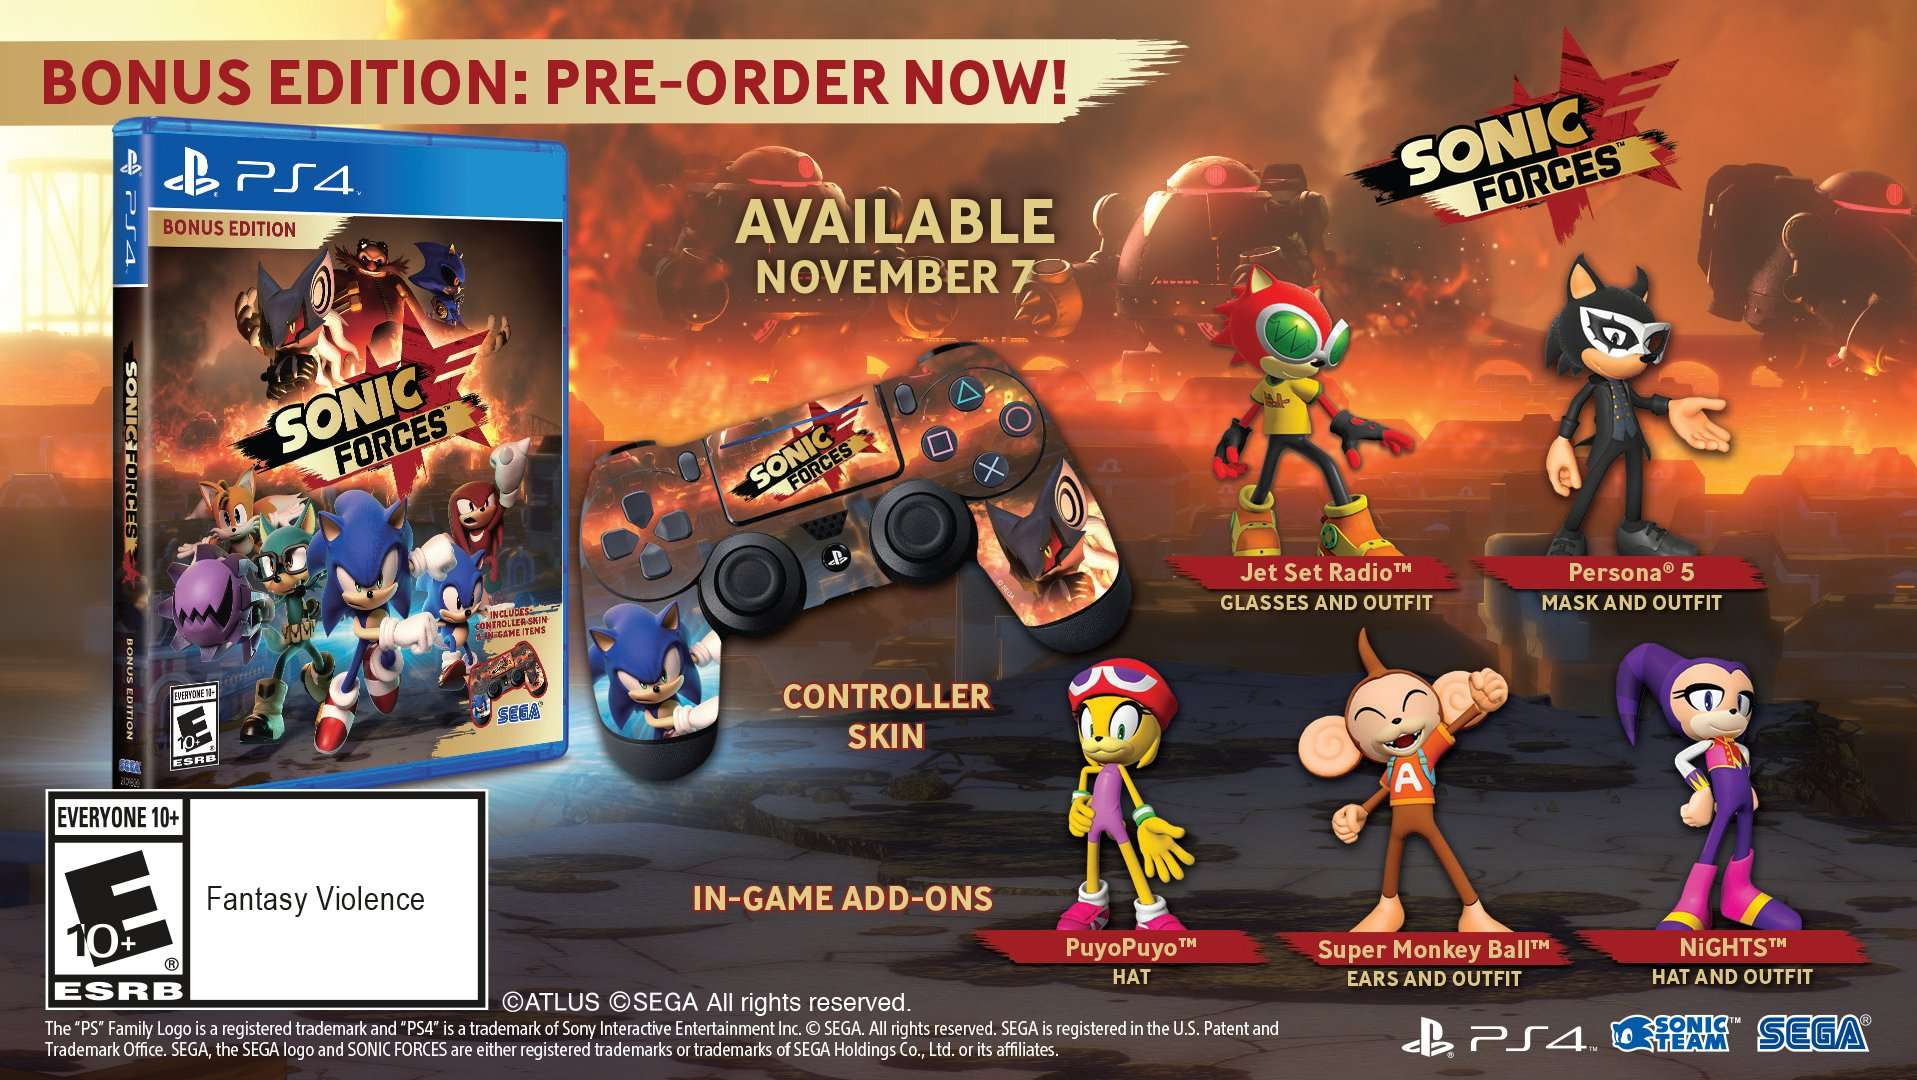 persona 5 costume announced as pre order bonus for sonic forces